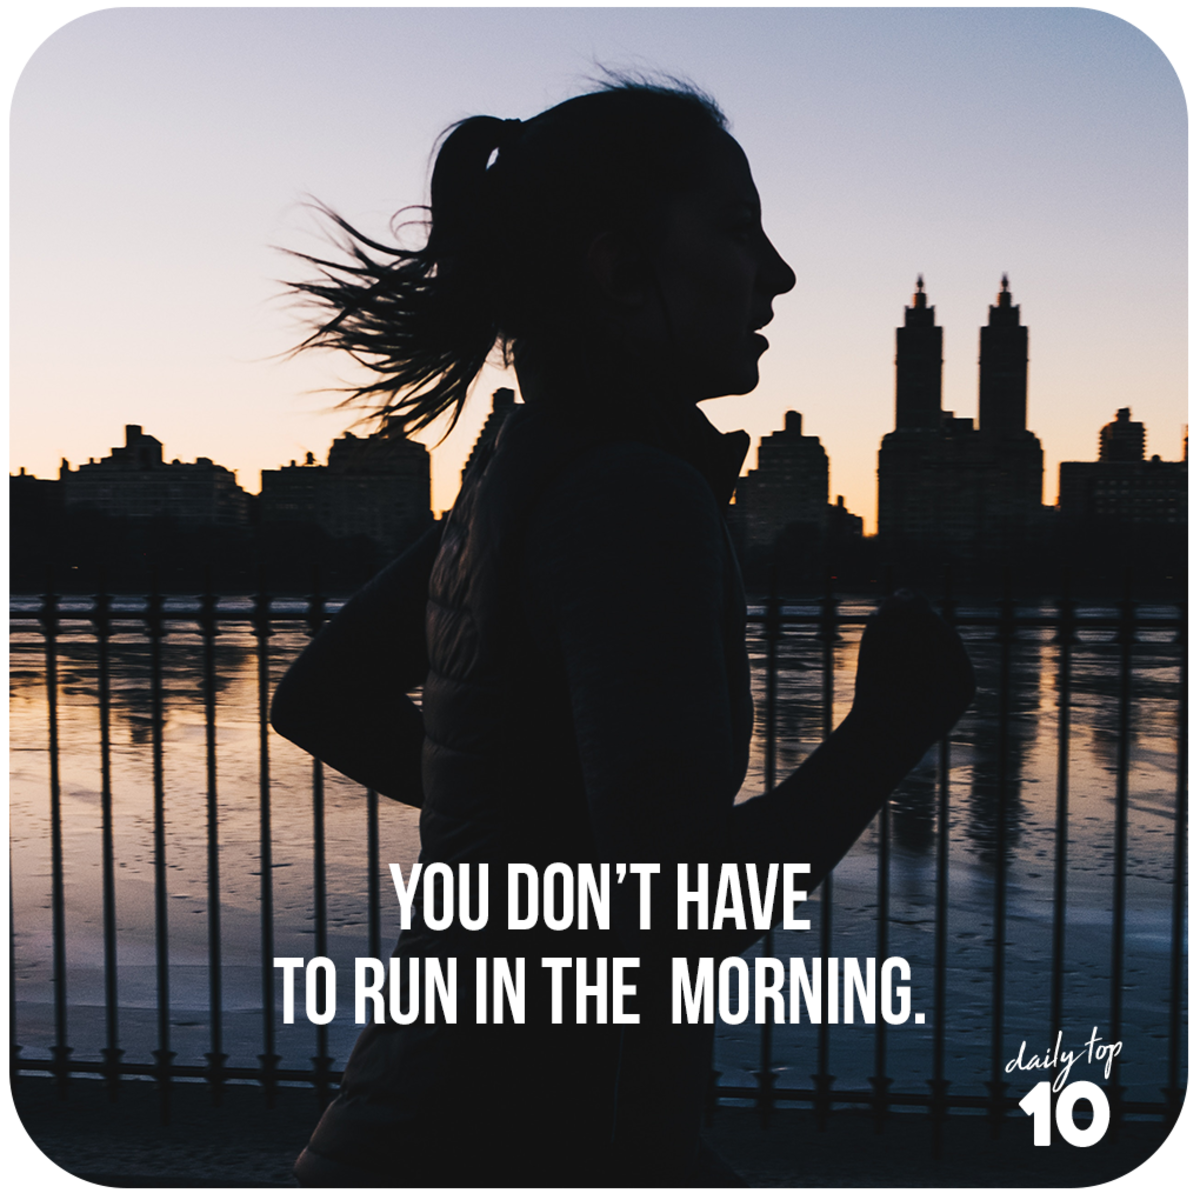 You don't have to run in the morning.